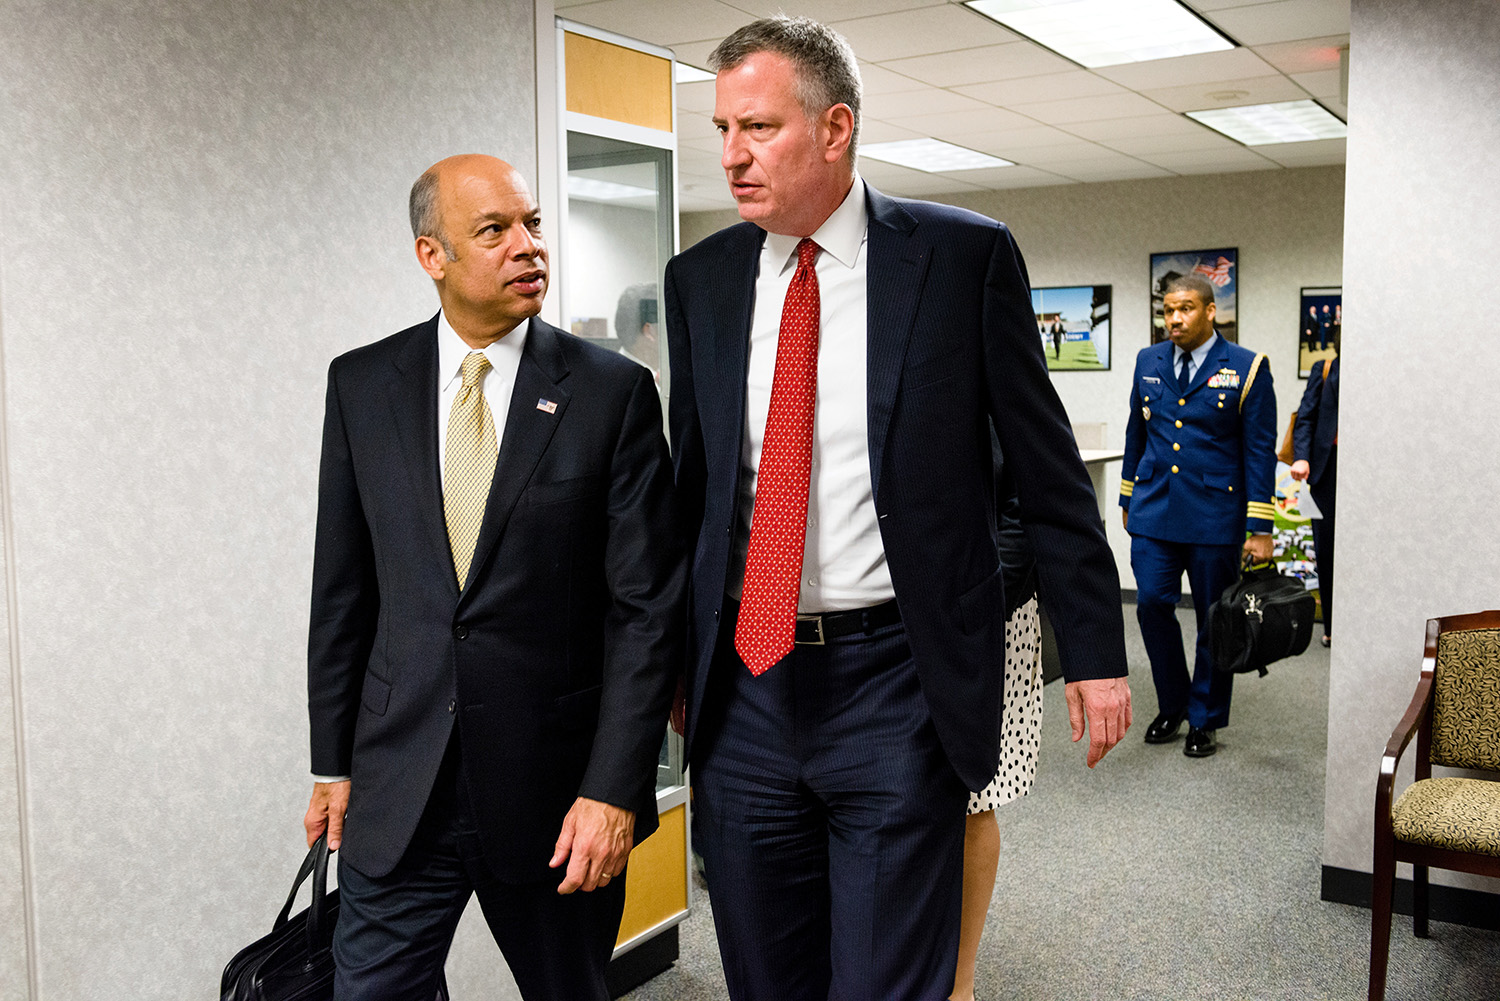 Mayor Bill de Blasio and Homeland Security Secretary Jeh Johnson emerge from a closed-door meeting in Washington.